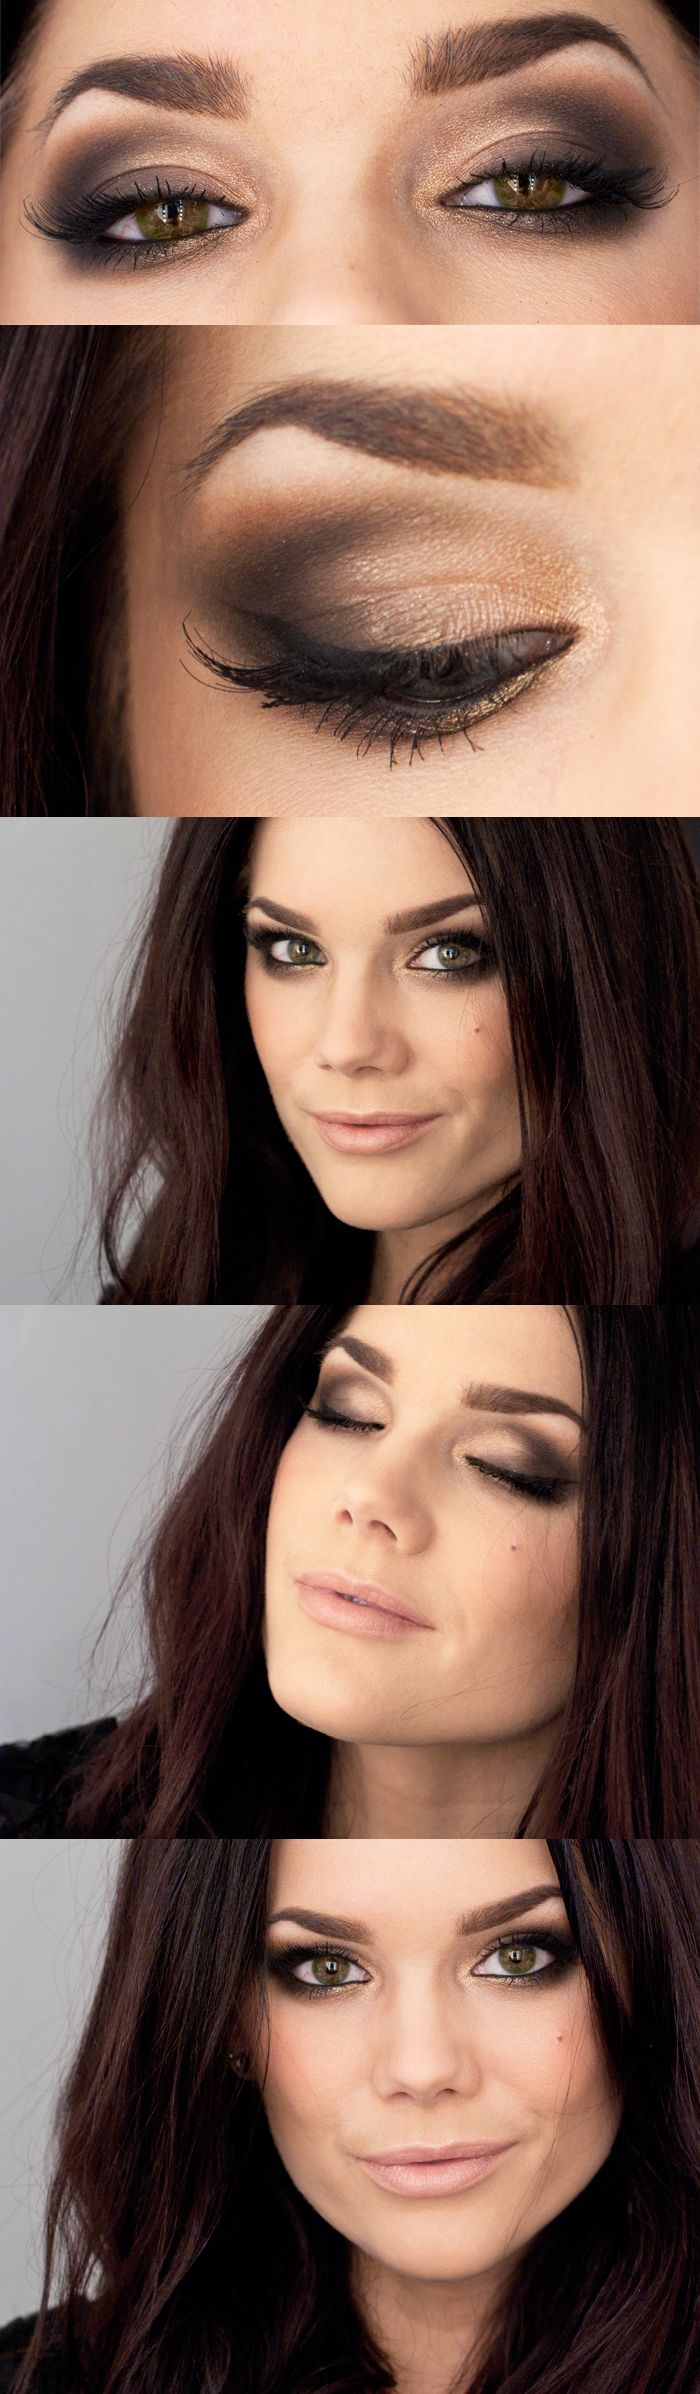 Linda Hallberg Mila Kunis inspired look.  I want to move to Sweden and be her friend.